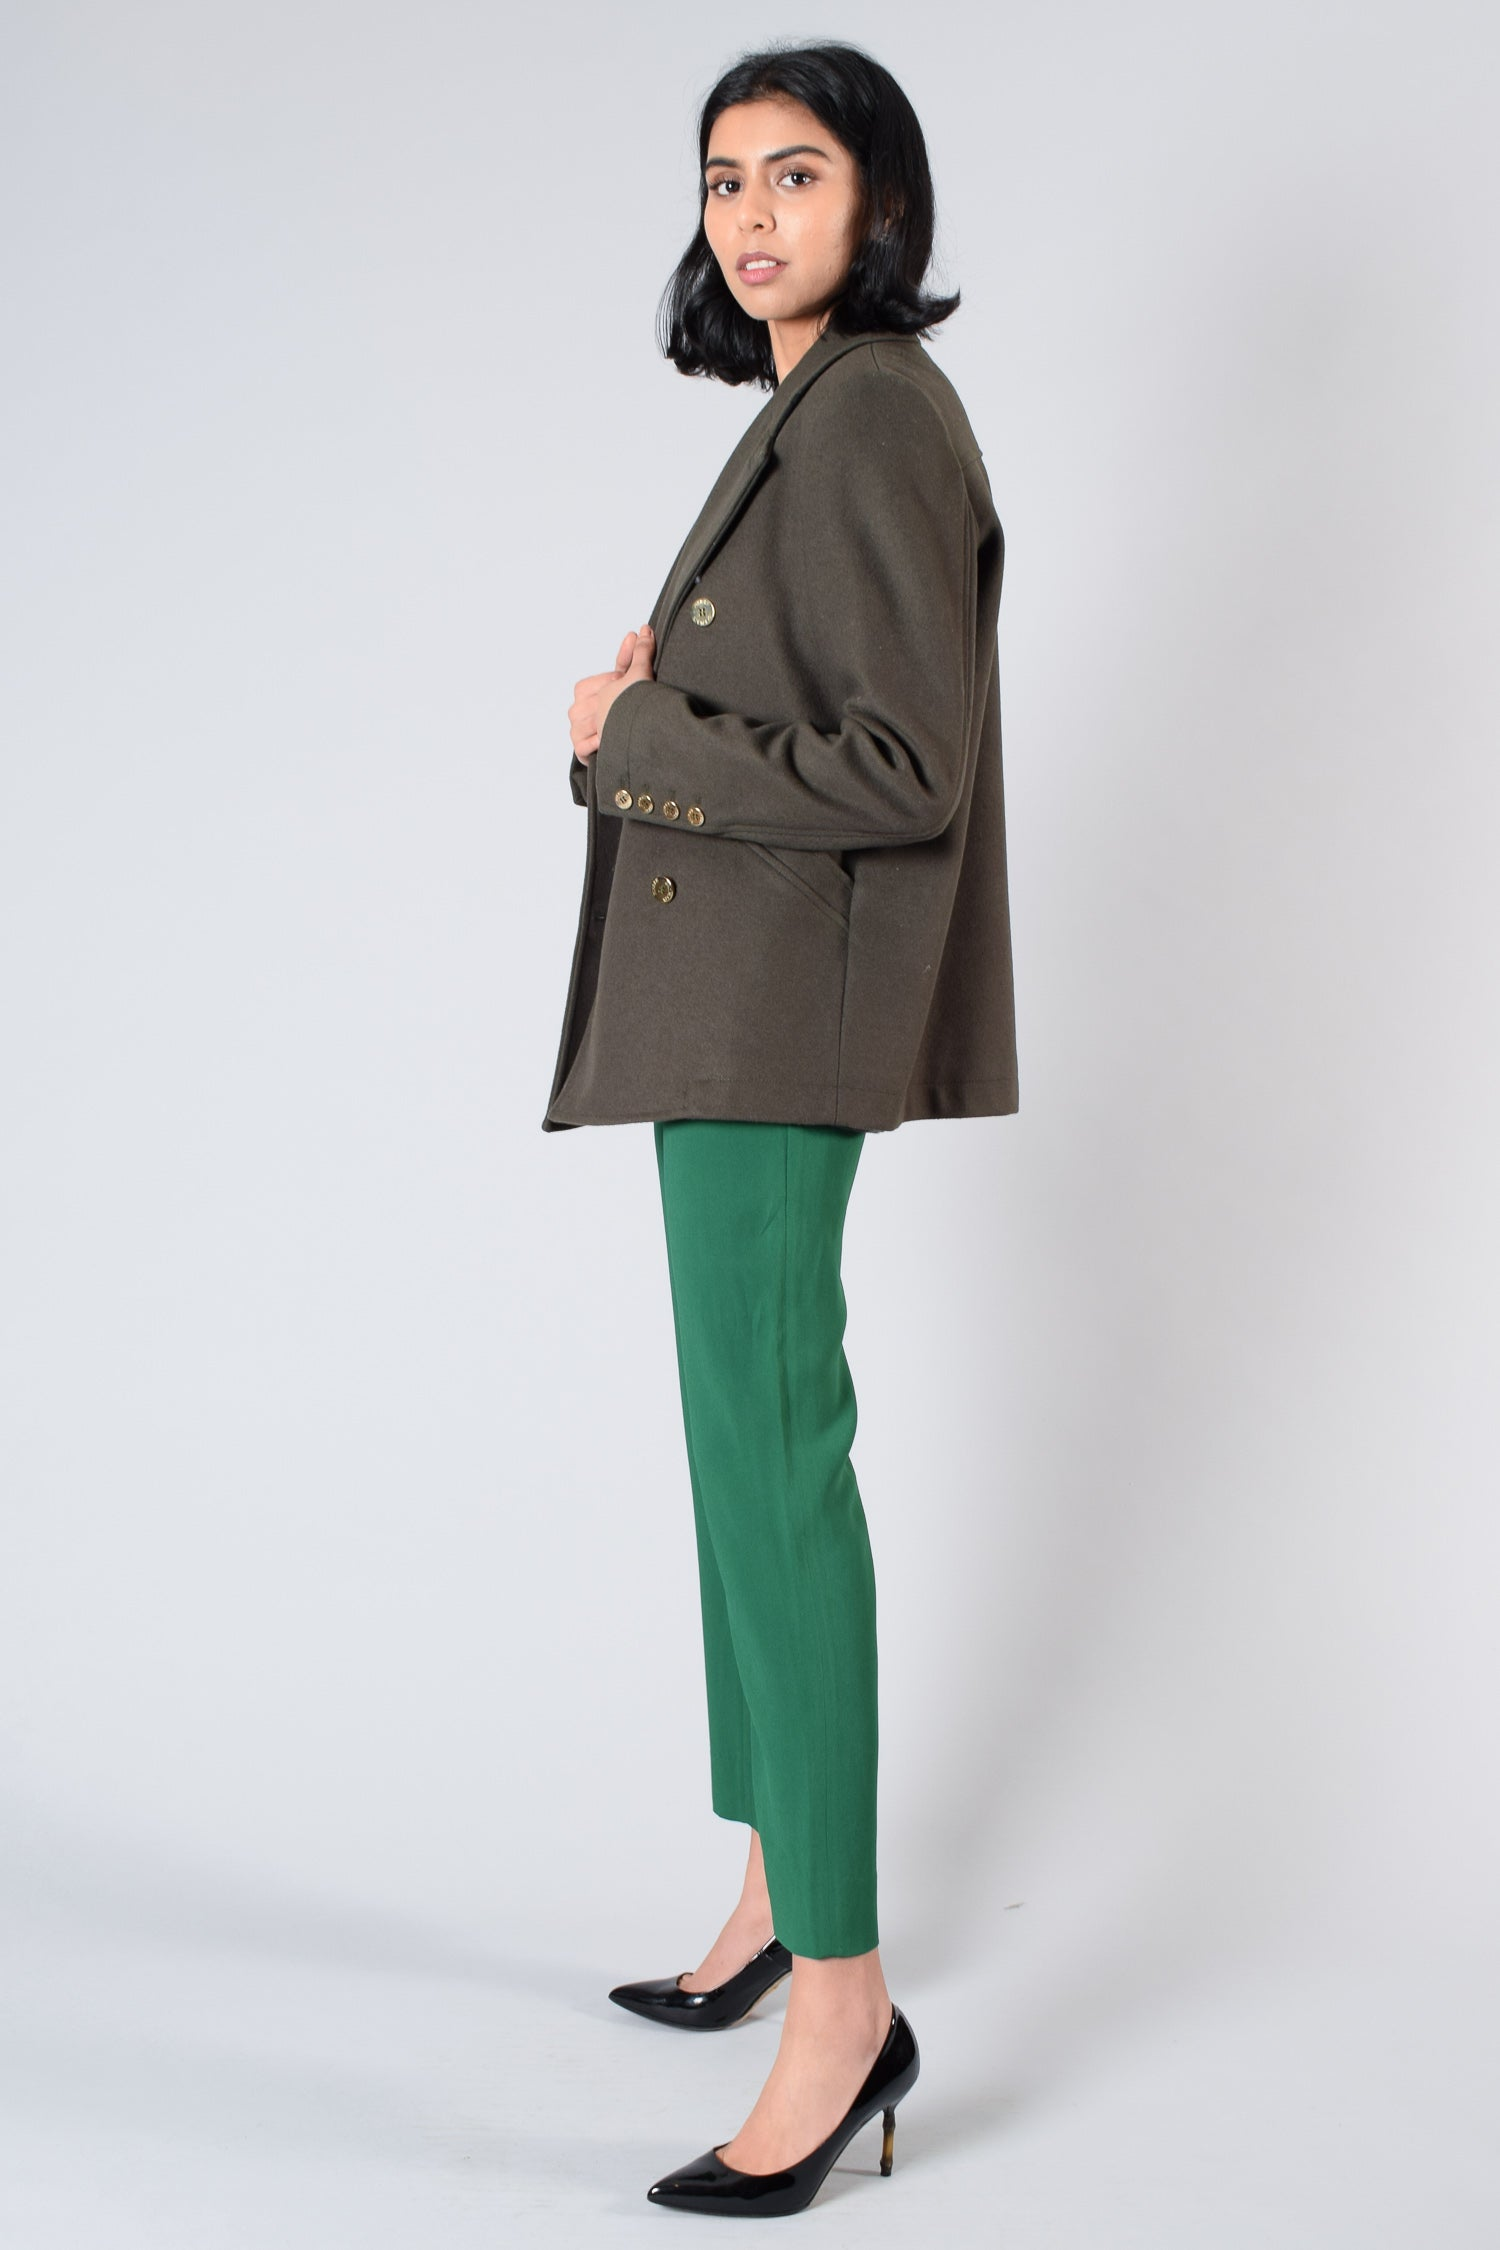 Pierre Balmain Green Wool Blazer with Gold Buttons Size 28